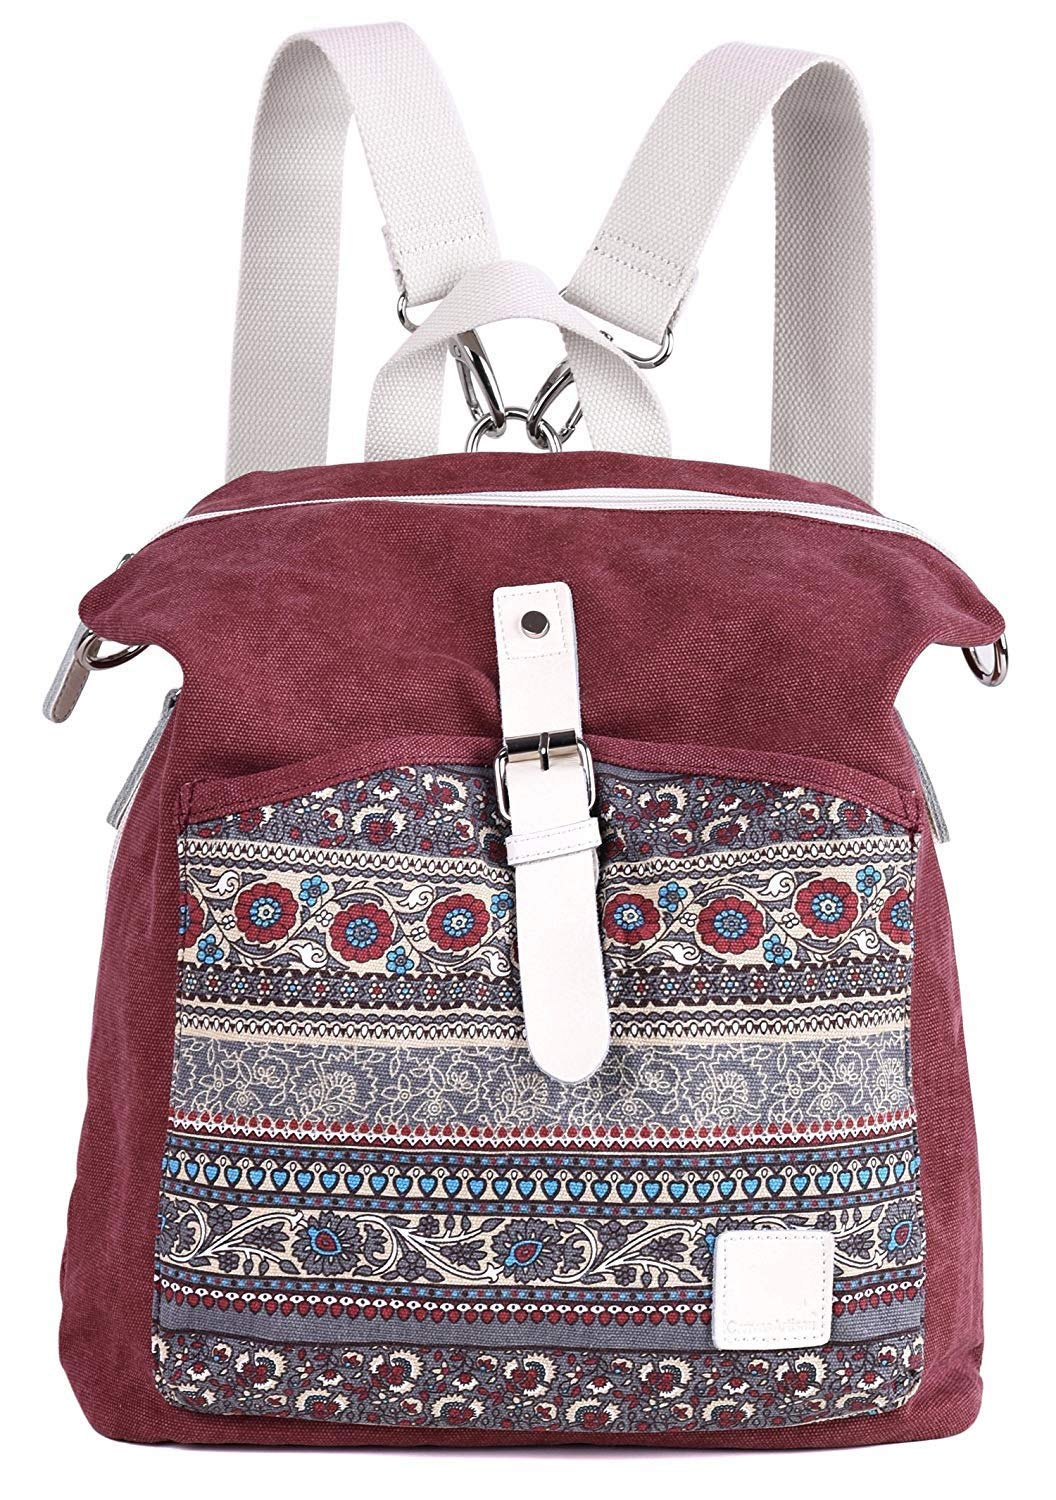 RED Cartoon Backpack Women's Cute Backpack Shoulder Bags Girl Canvas Backpack Daypack (color   RED)